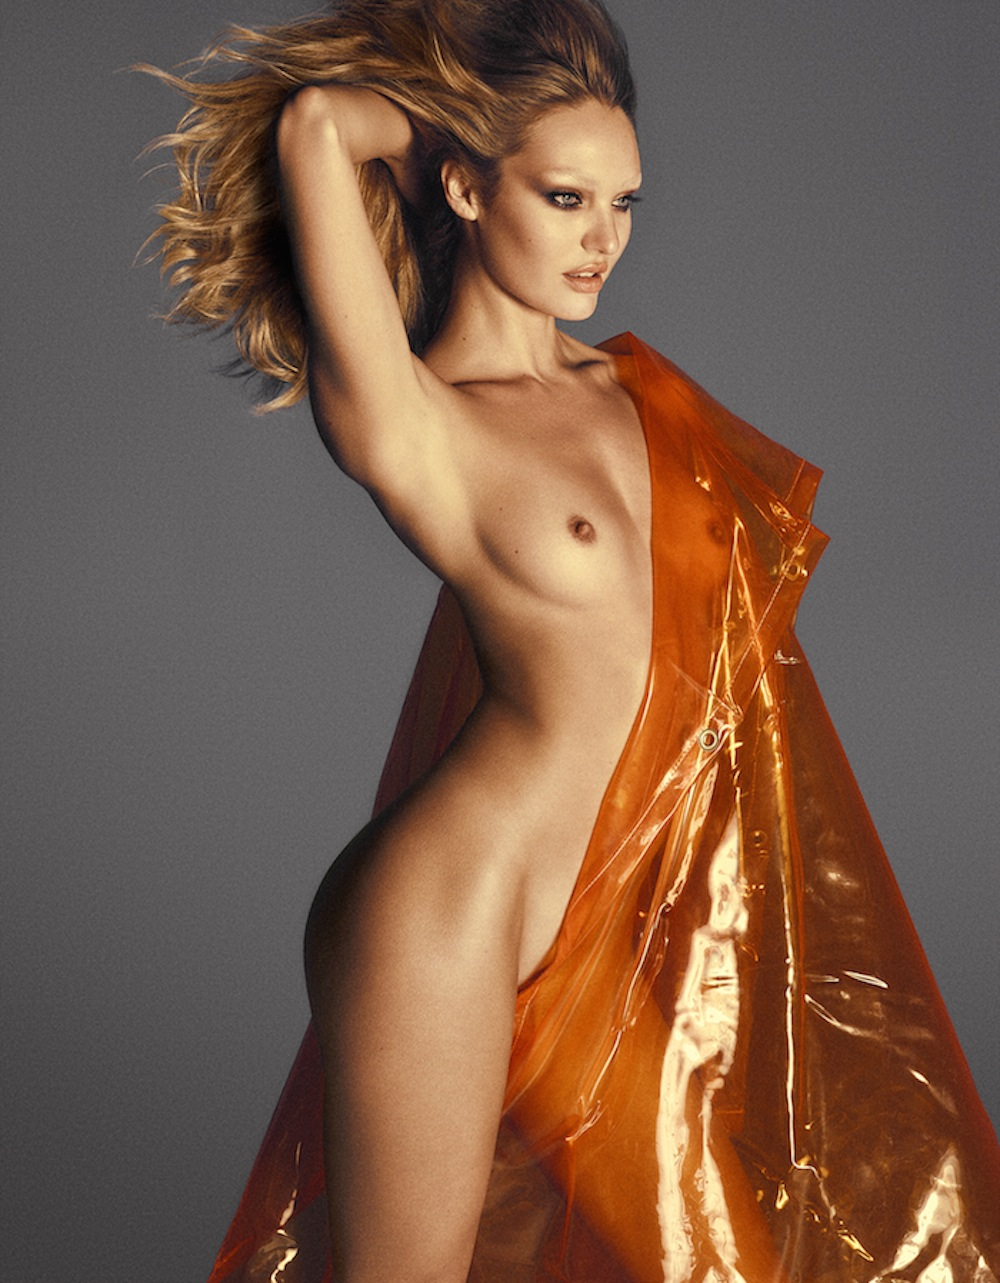 Candice-Swanepoel-by-Luigi-and-Iango-for-Lui-Magazine-culture and life-02